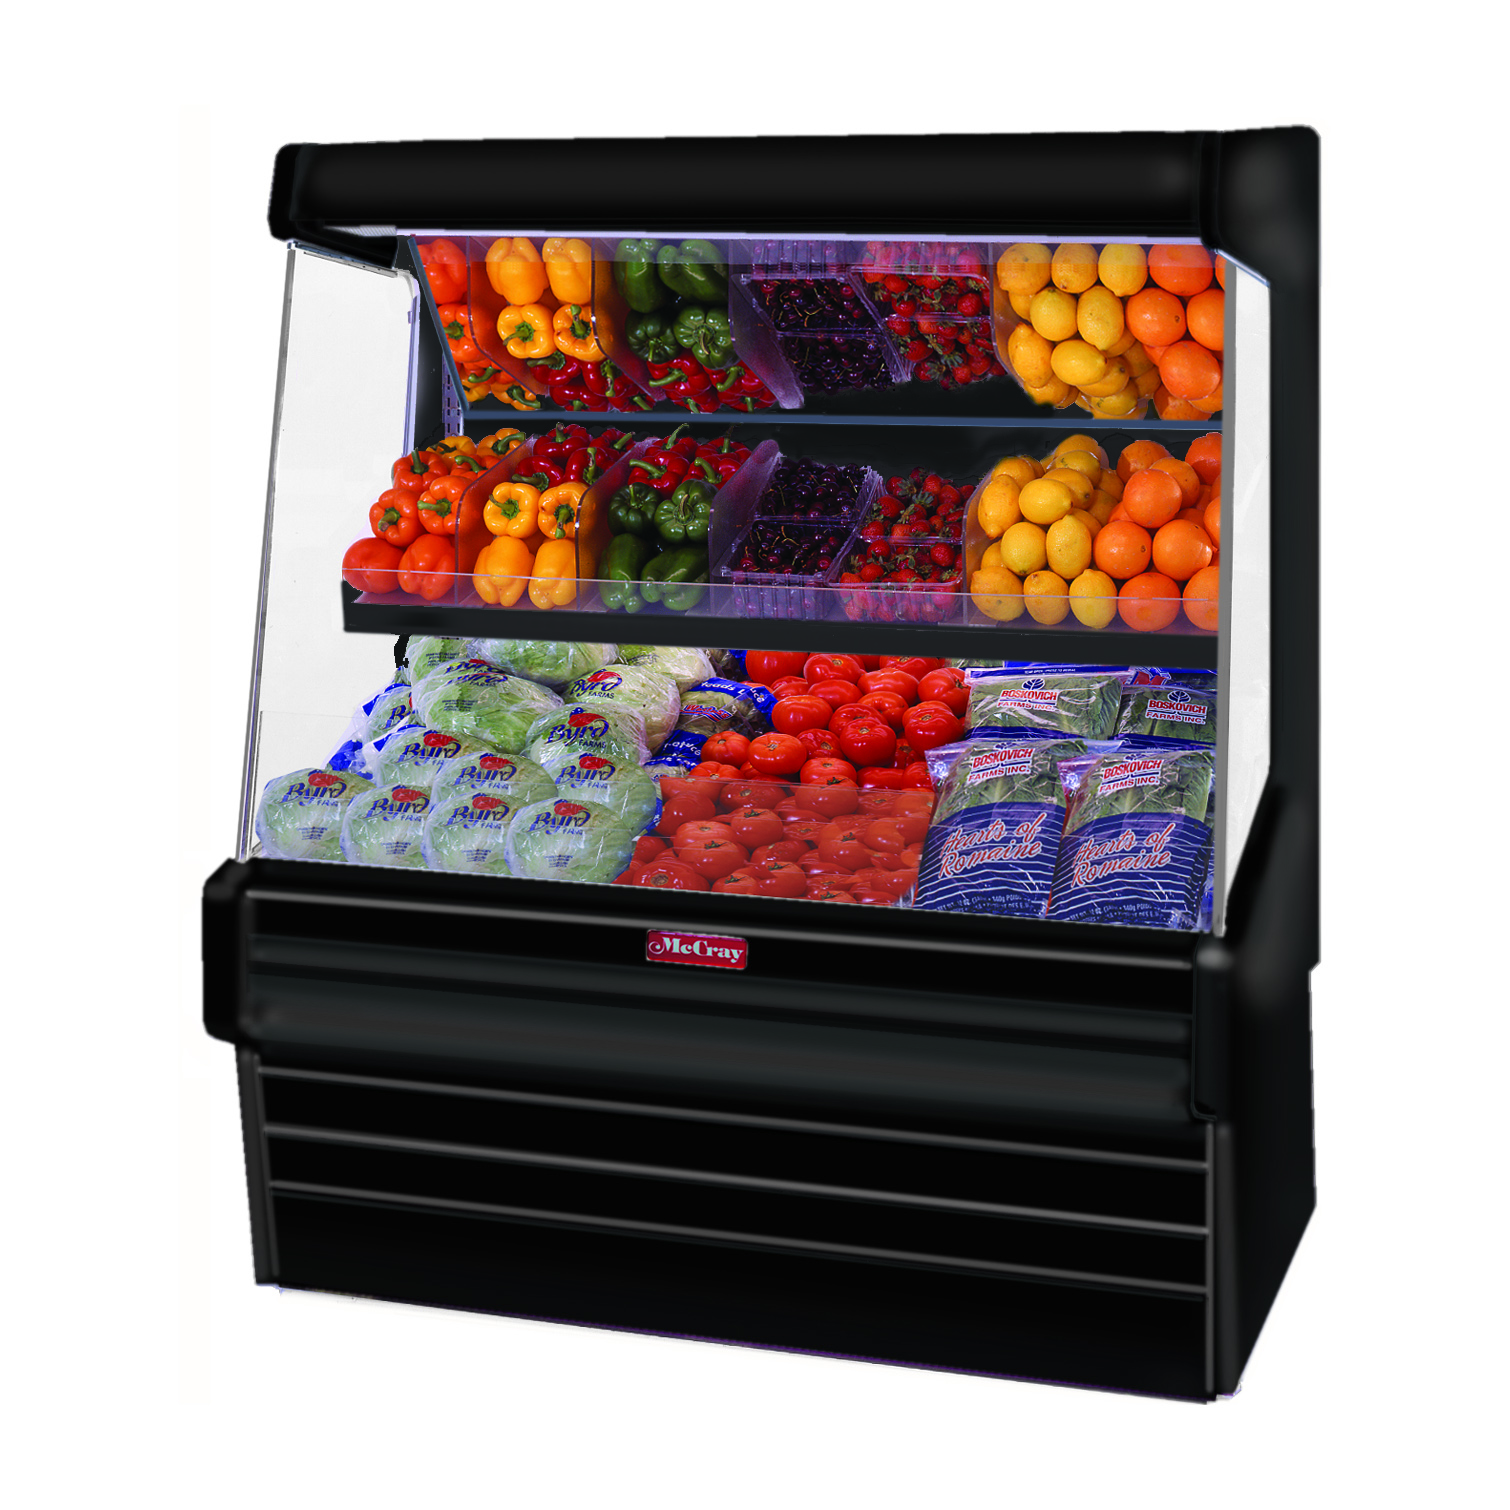 Howard-McCray R-OP30E-4L-B-LED display case, produce